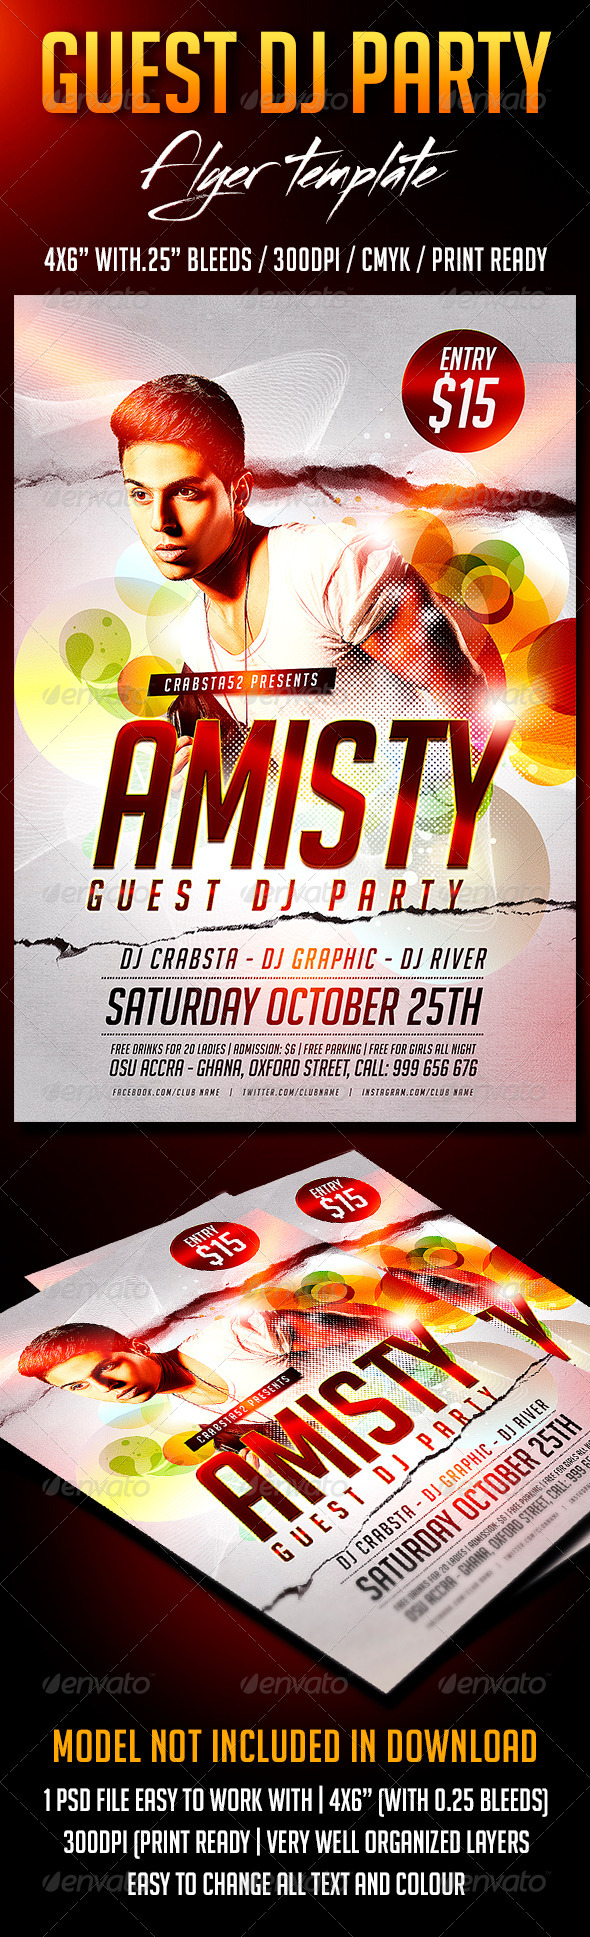 GraphicRiver Guest Dj Party Flyer Template 8724917